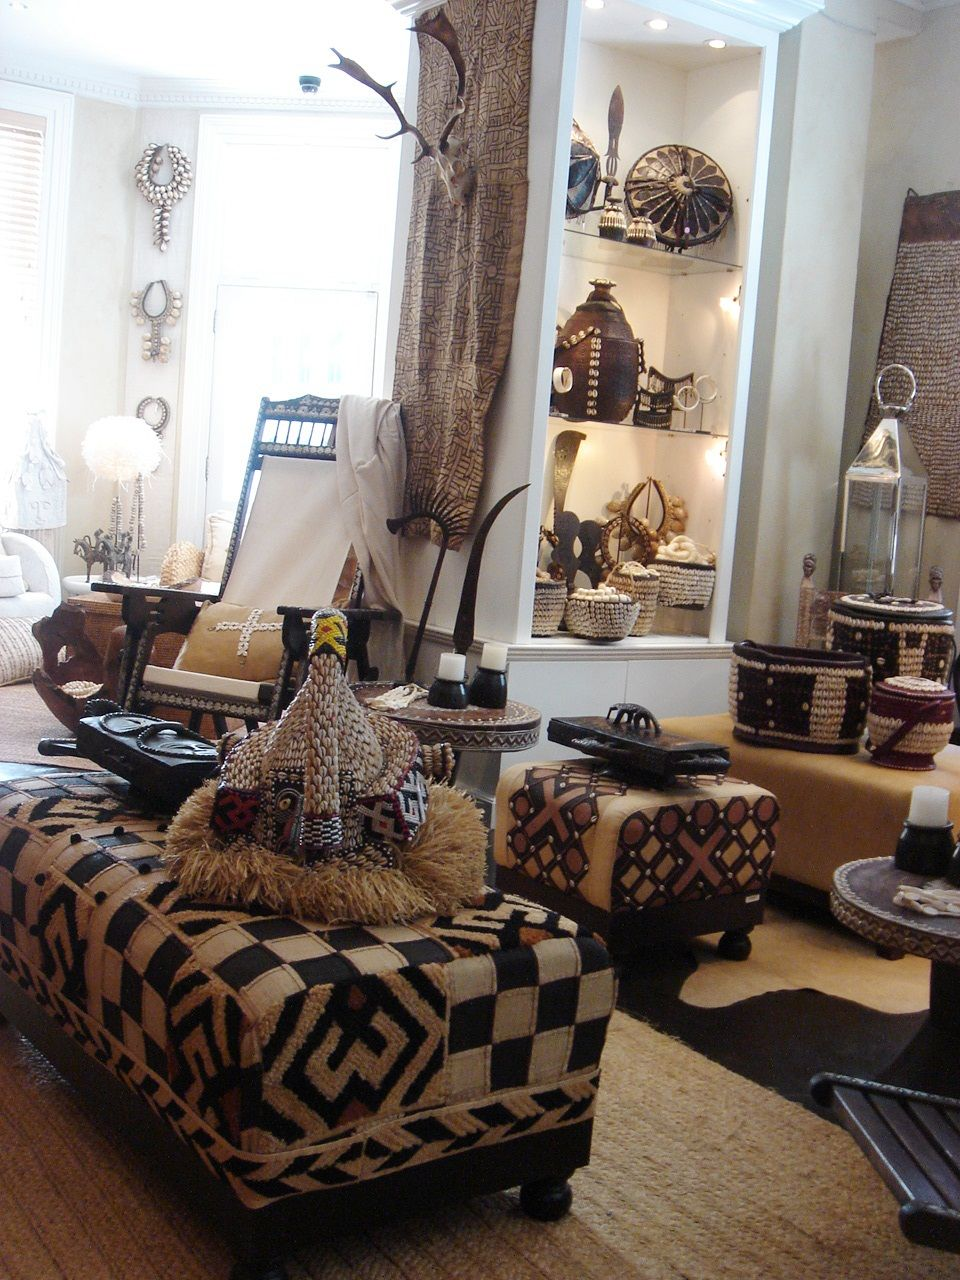 african decor furniture. African Kuba Cloth Furniture And Accessories. You Could Cover Some Stools Etc With That Fabric Decor Pinterest